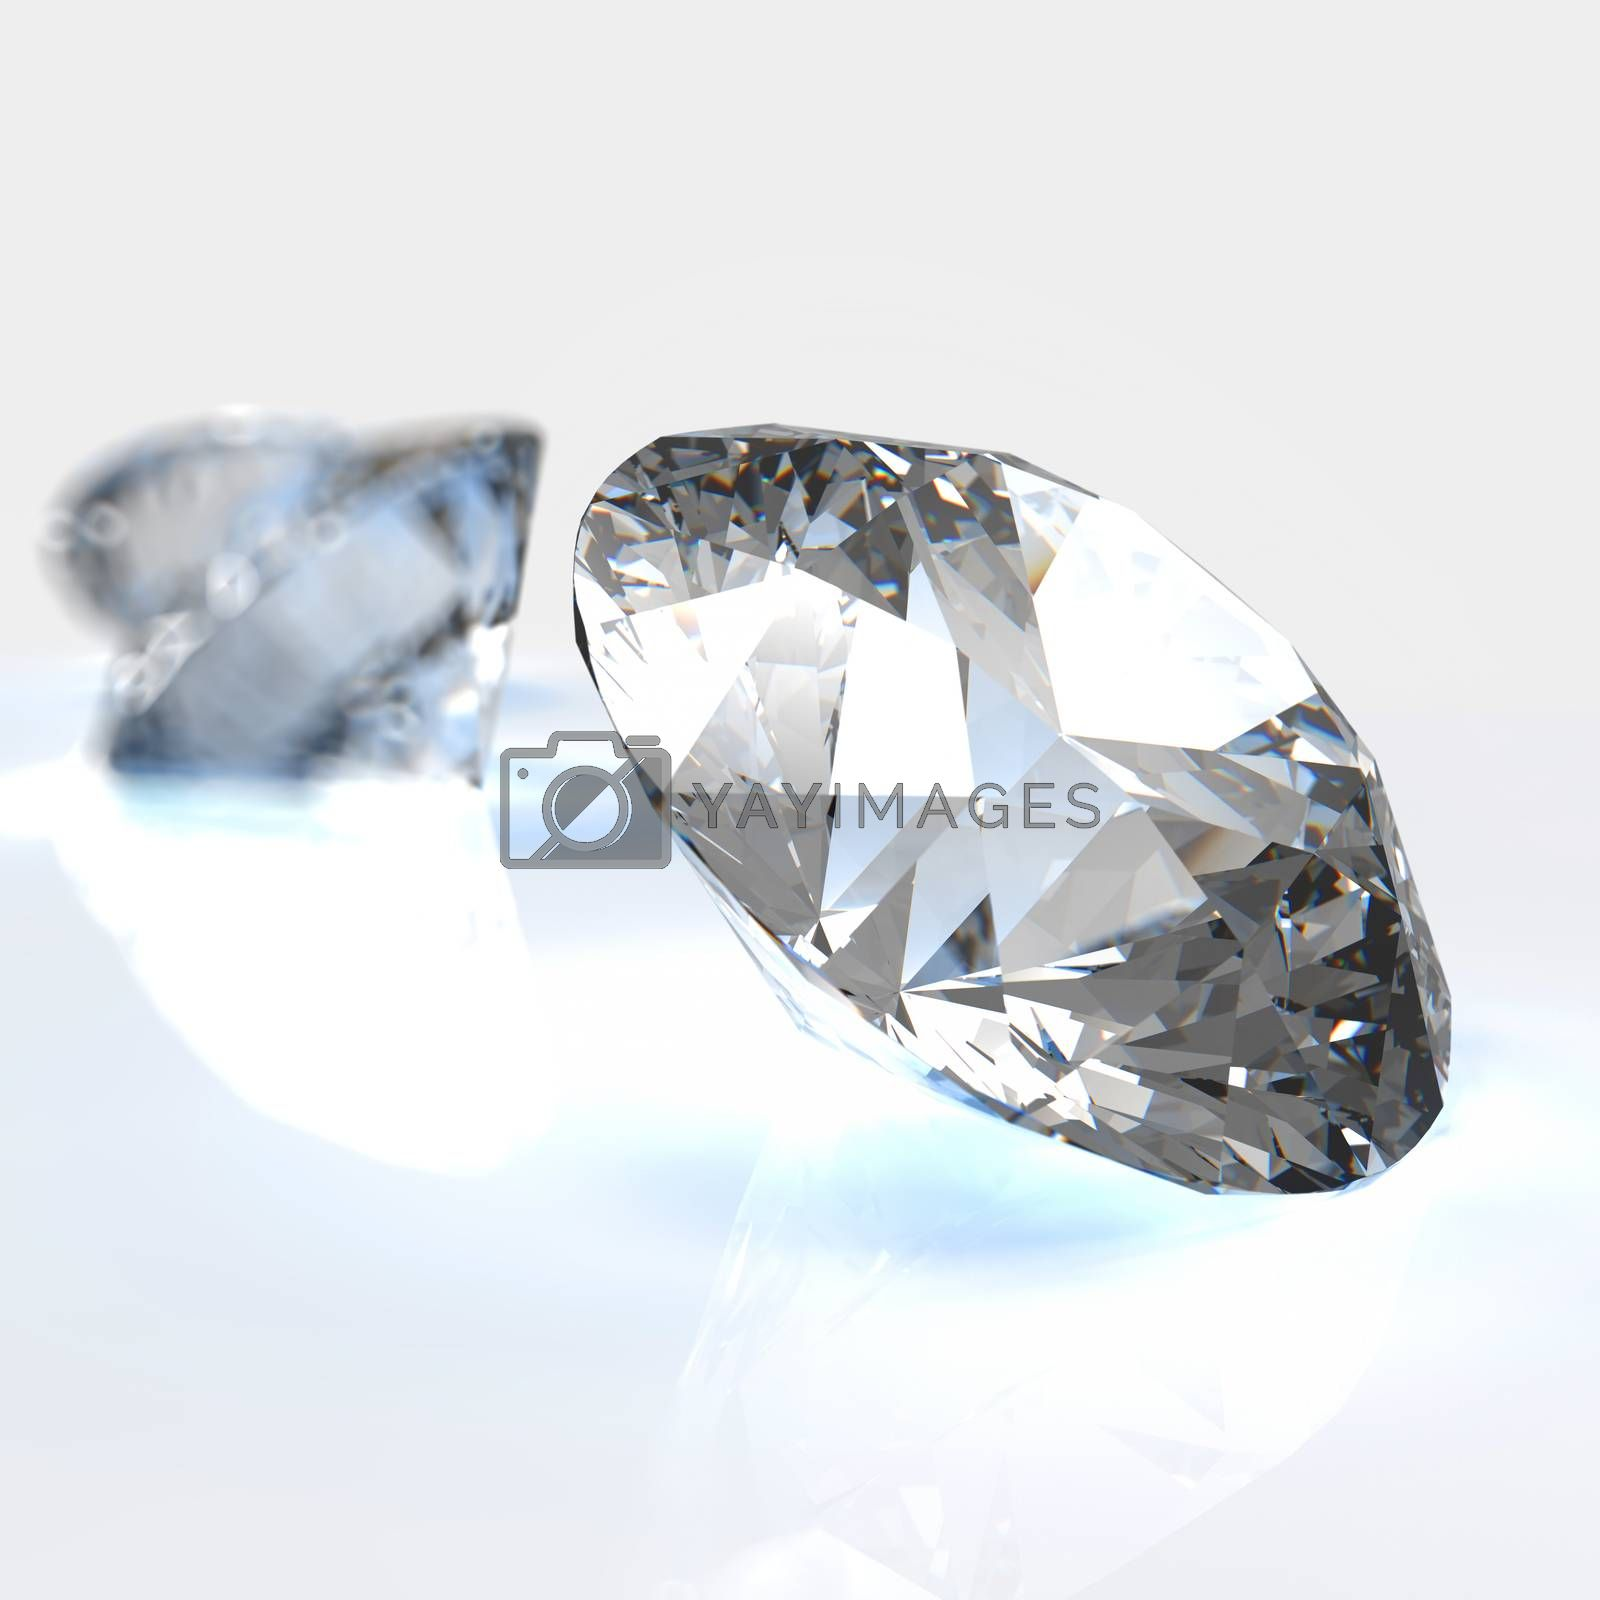 Royalty free image of Diamonds  on white background  by everythingpossible